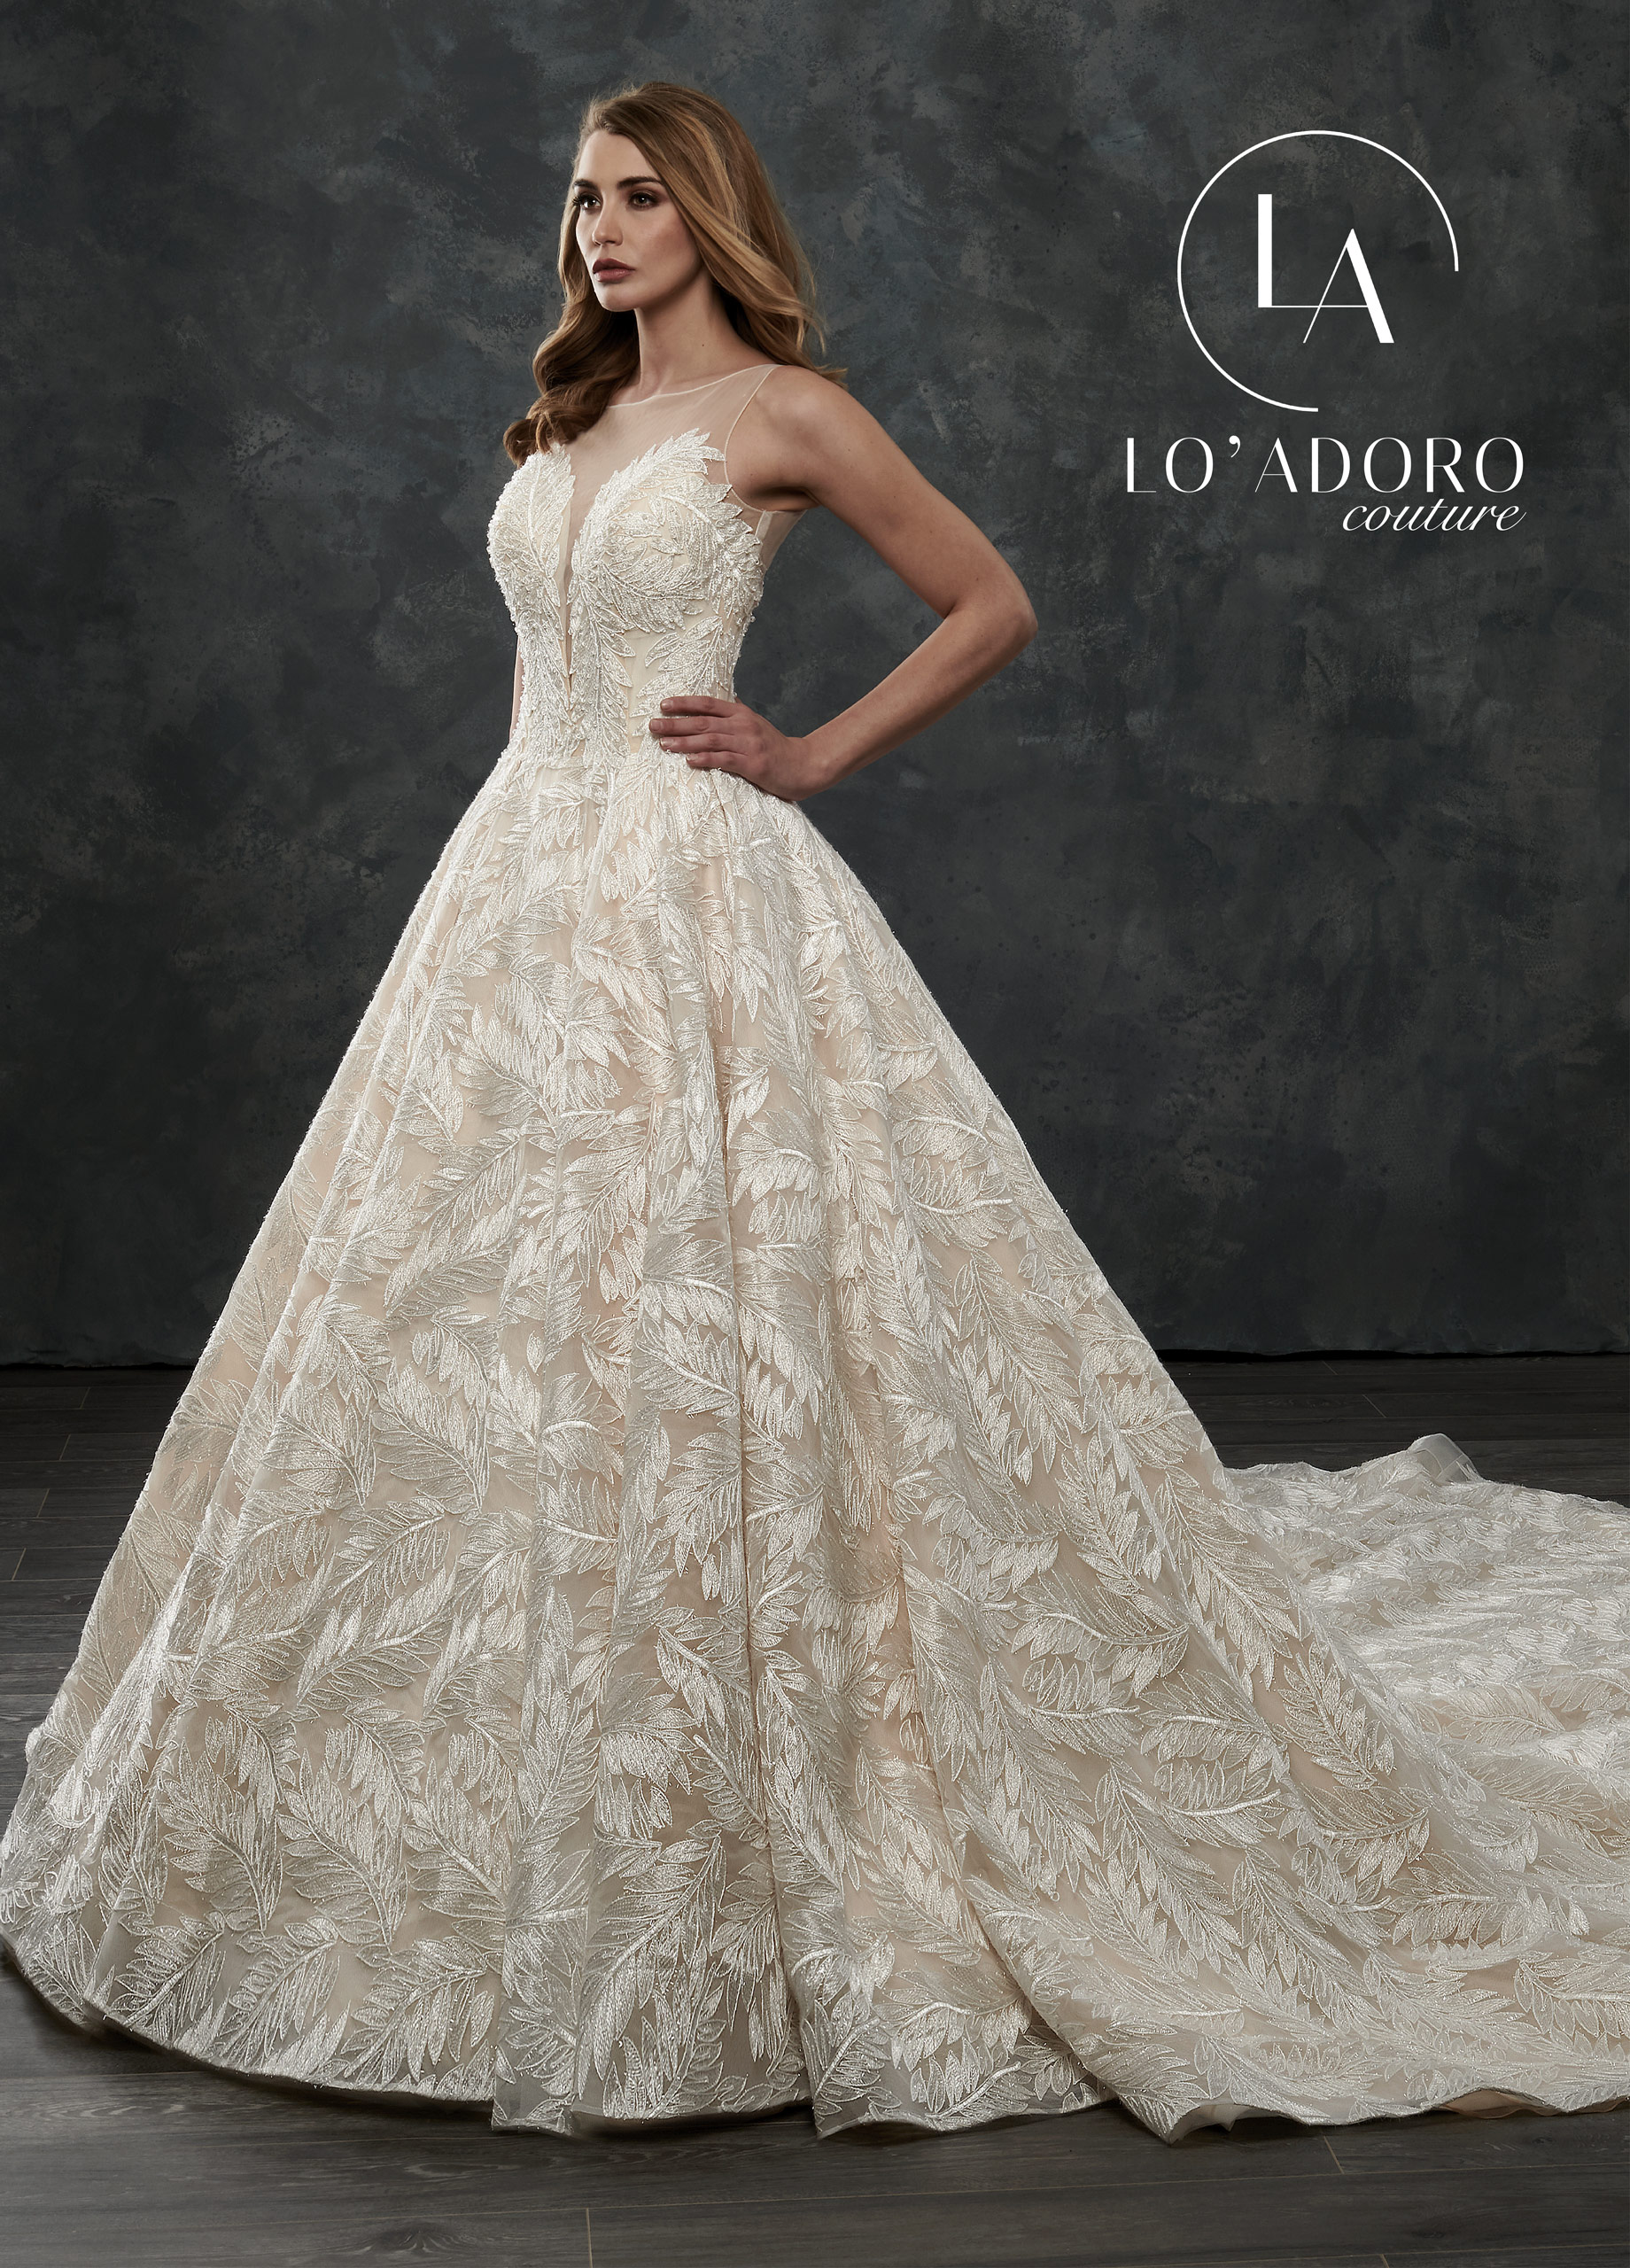 High Neckline Ball Gowns Lo' Adoro Couture BRIDAL in Nude Color